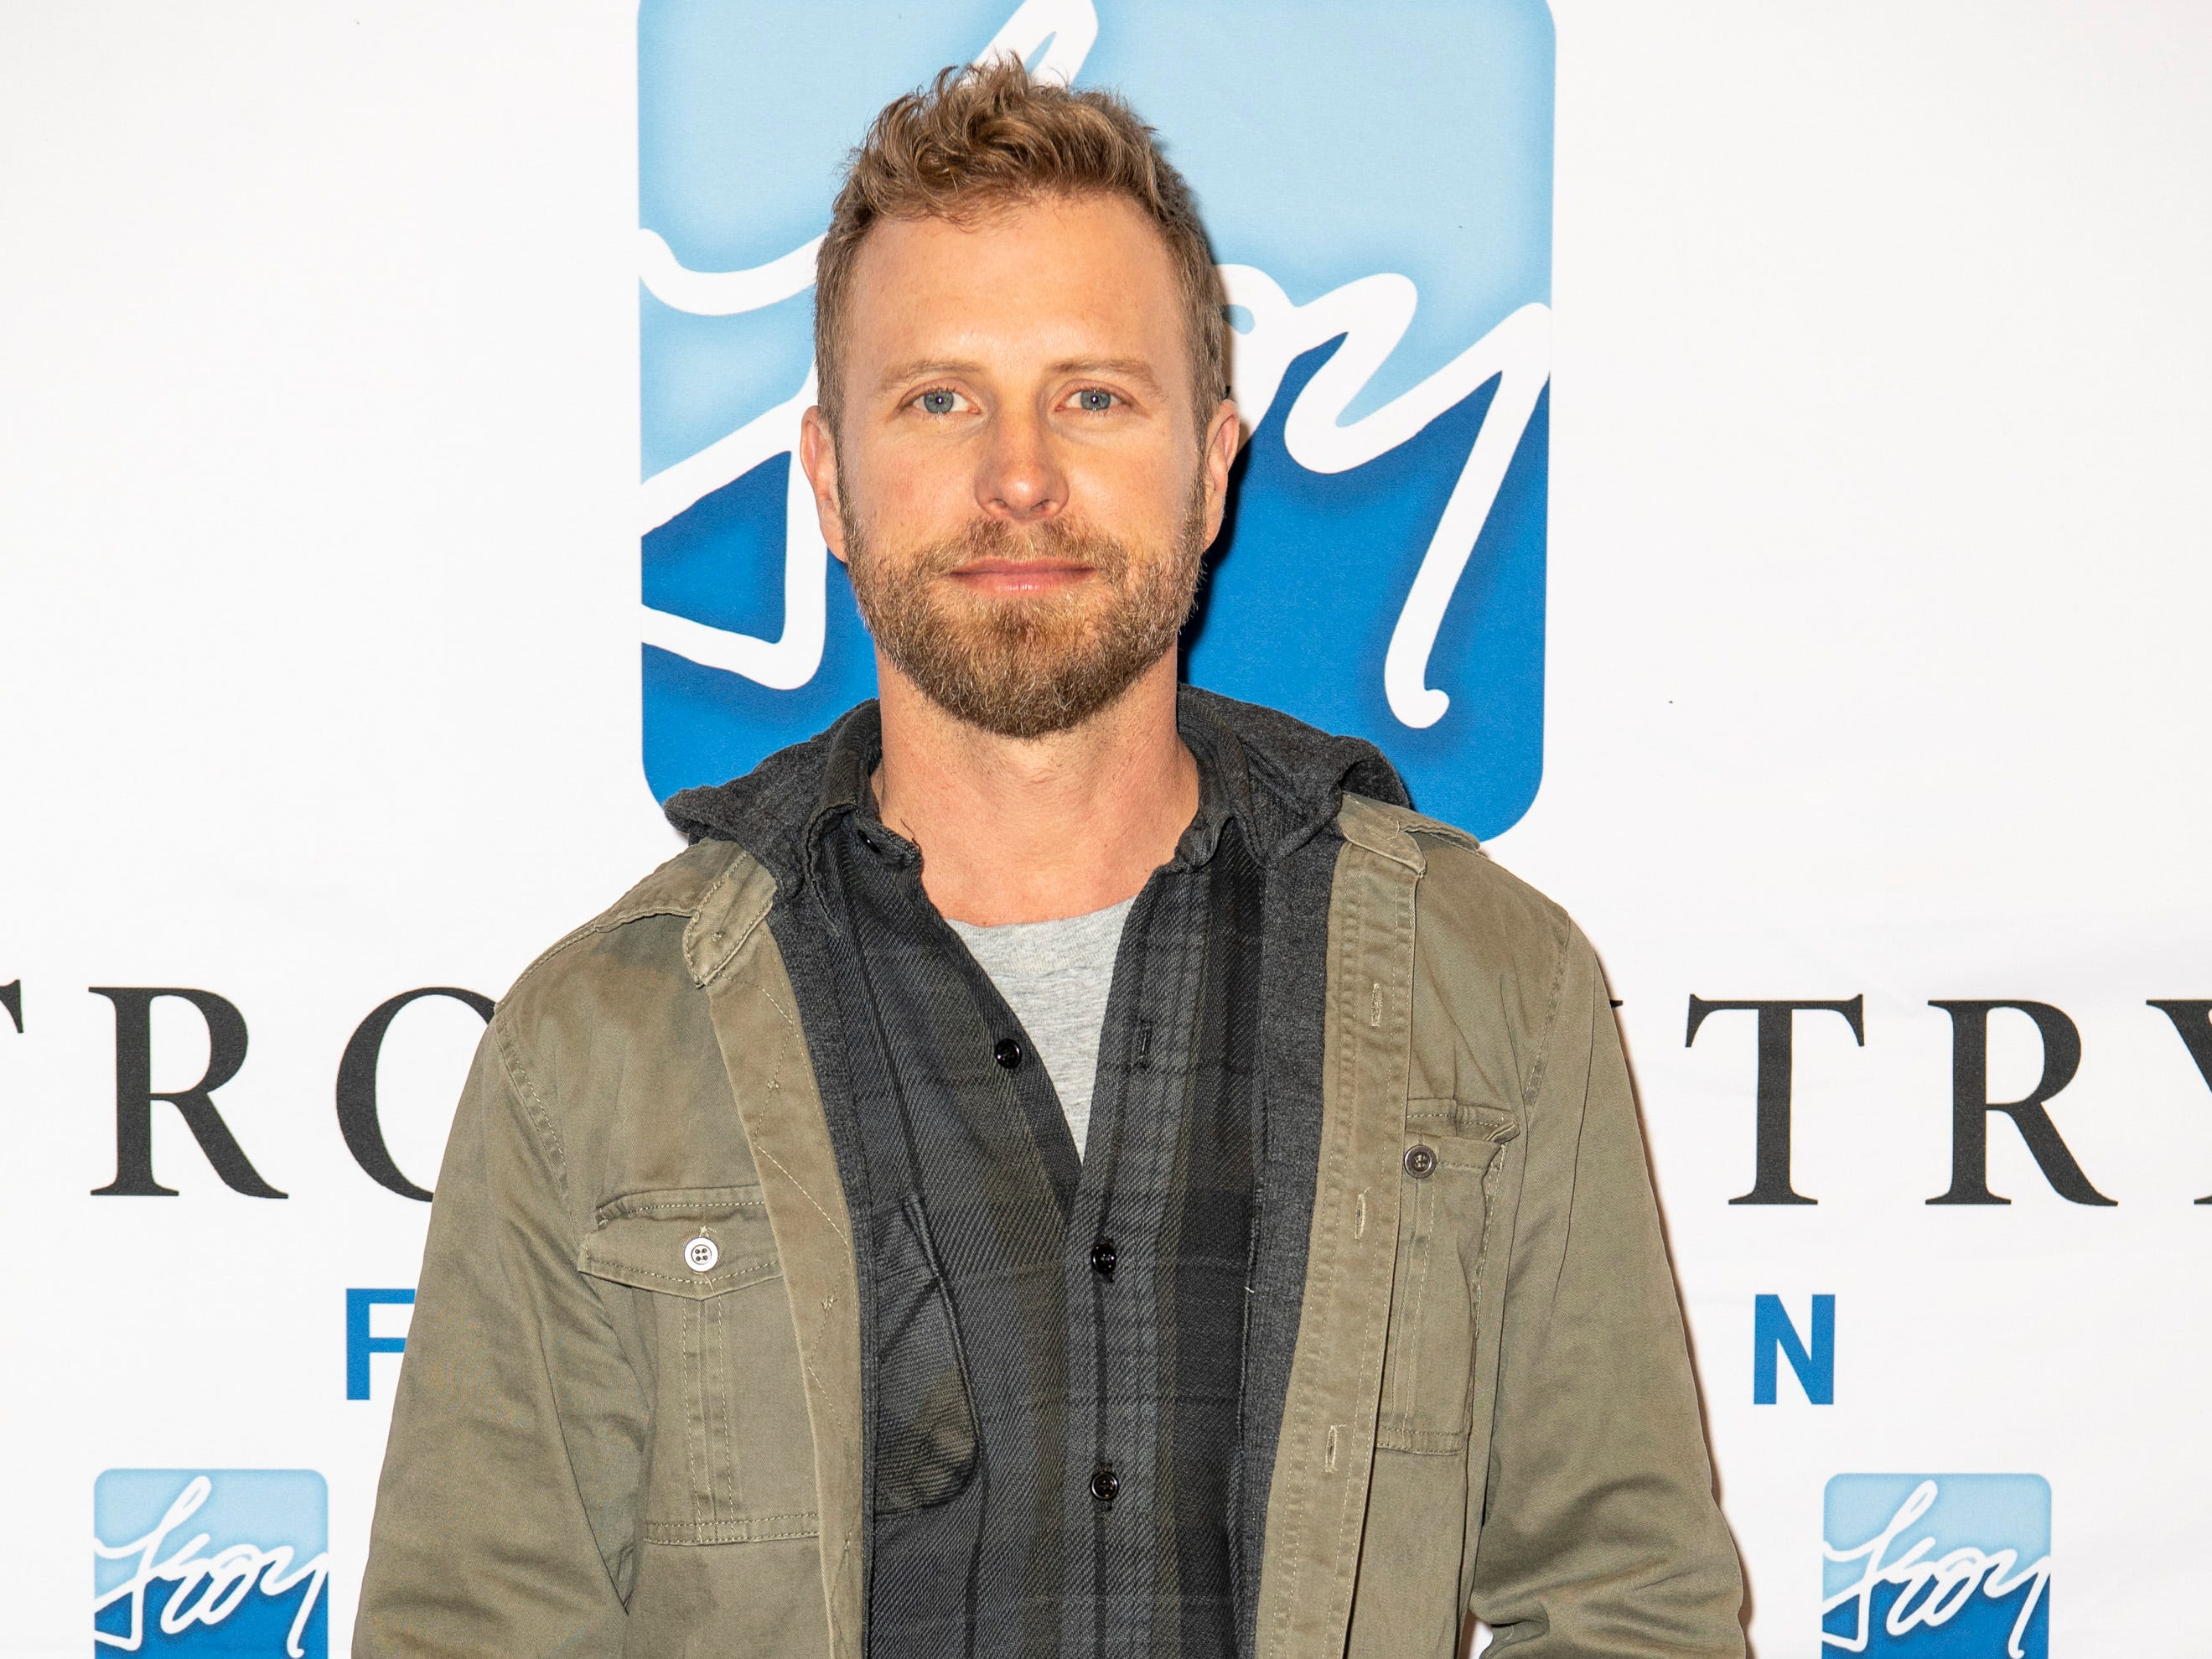 Dierks Bentley on the red carpet before the C'Ya On The Flipside Benefit Concert at the Grand Ole Opry House in Nashville, Tenn., Wednesday, Jan. 9, 2019.